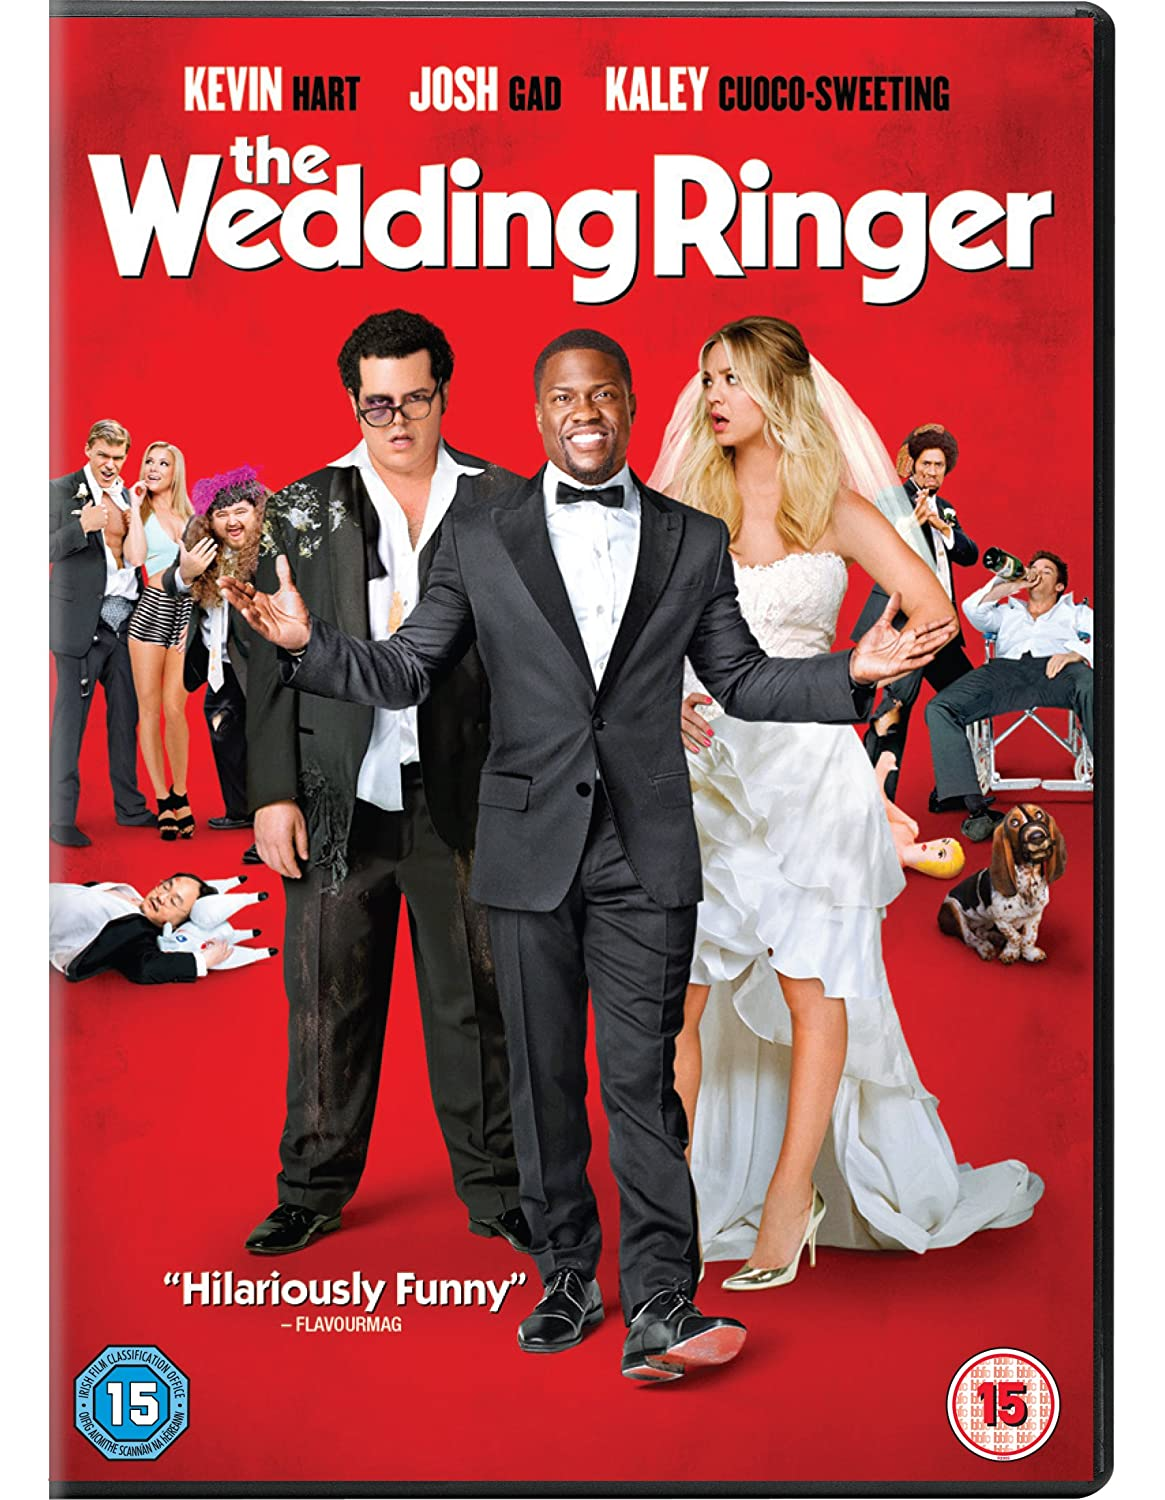 Amazon.com: The Wedding Ringer [DVD] [10]: Movies & TV